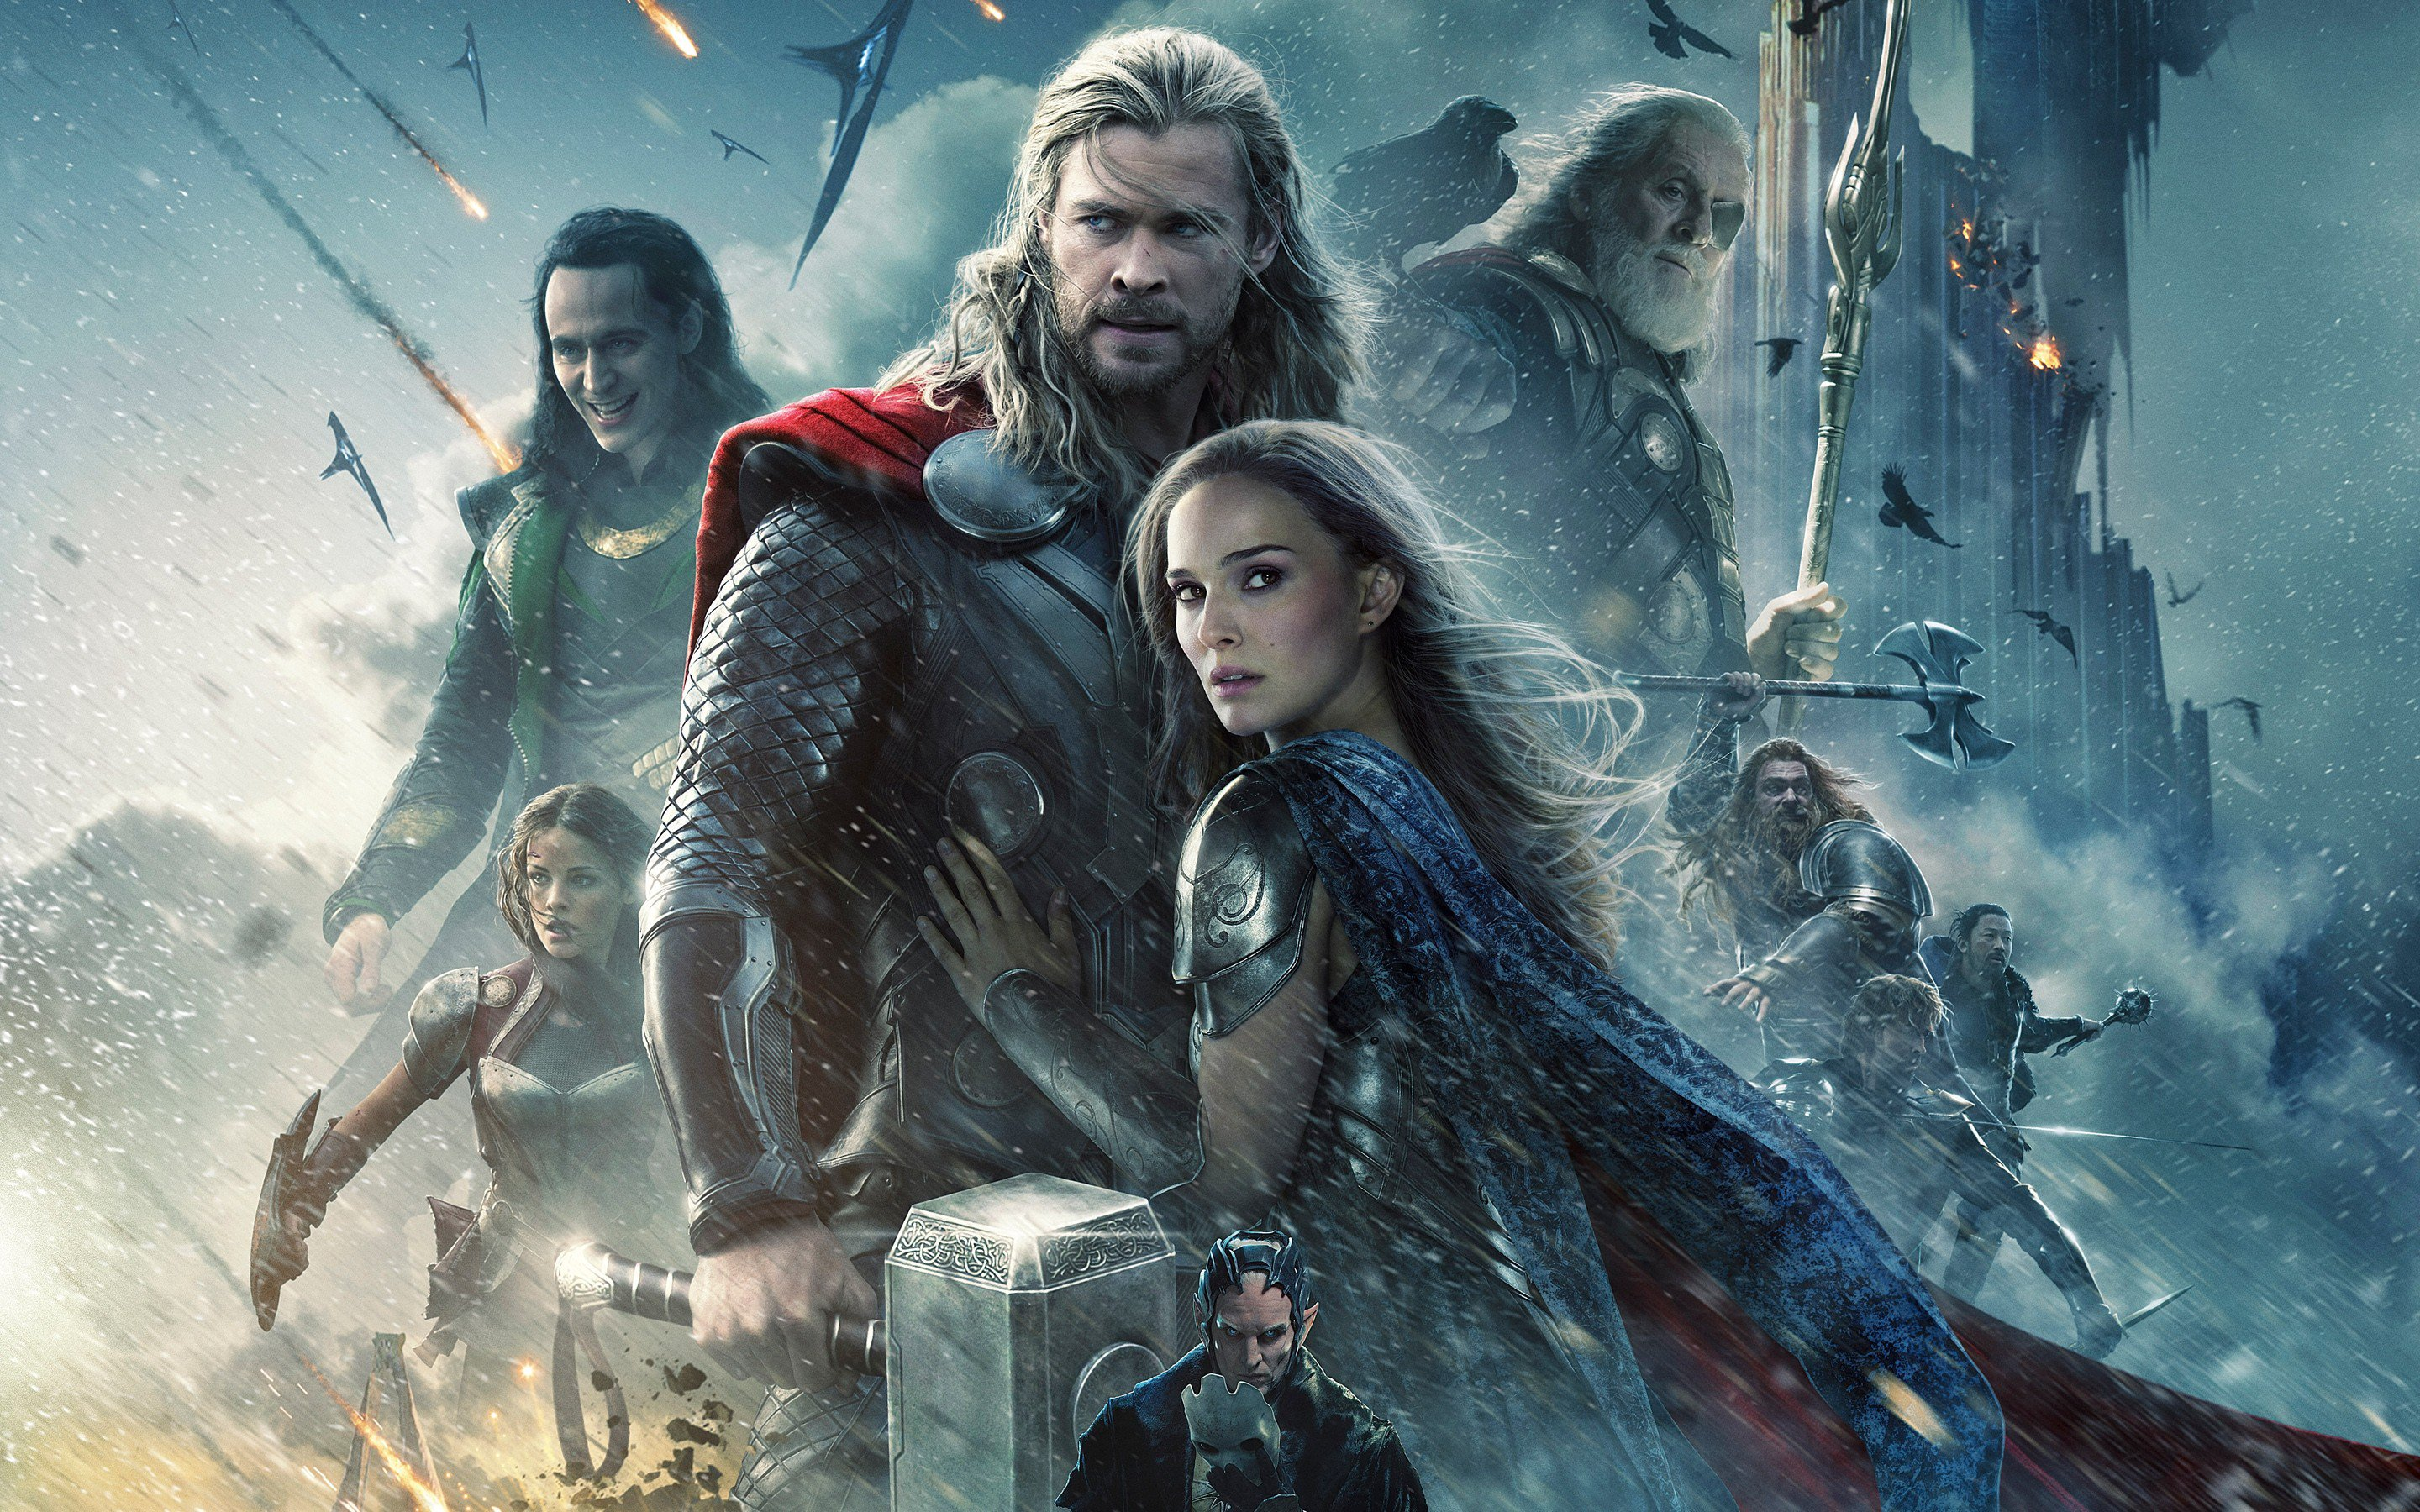 thor 2 the dark world, hd movies, 4k wallpapers, images, backgrounds